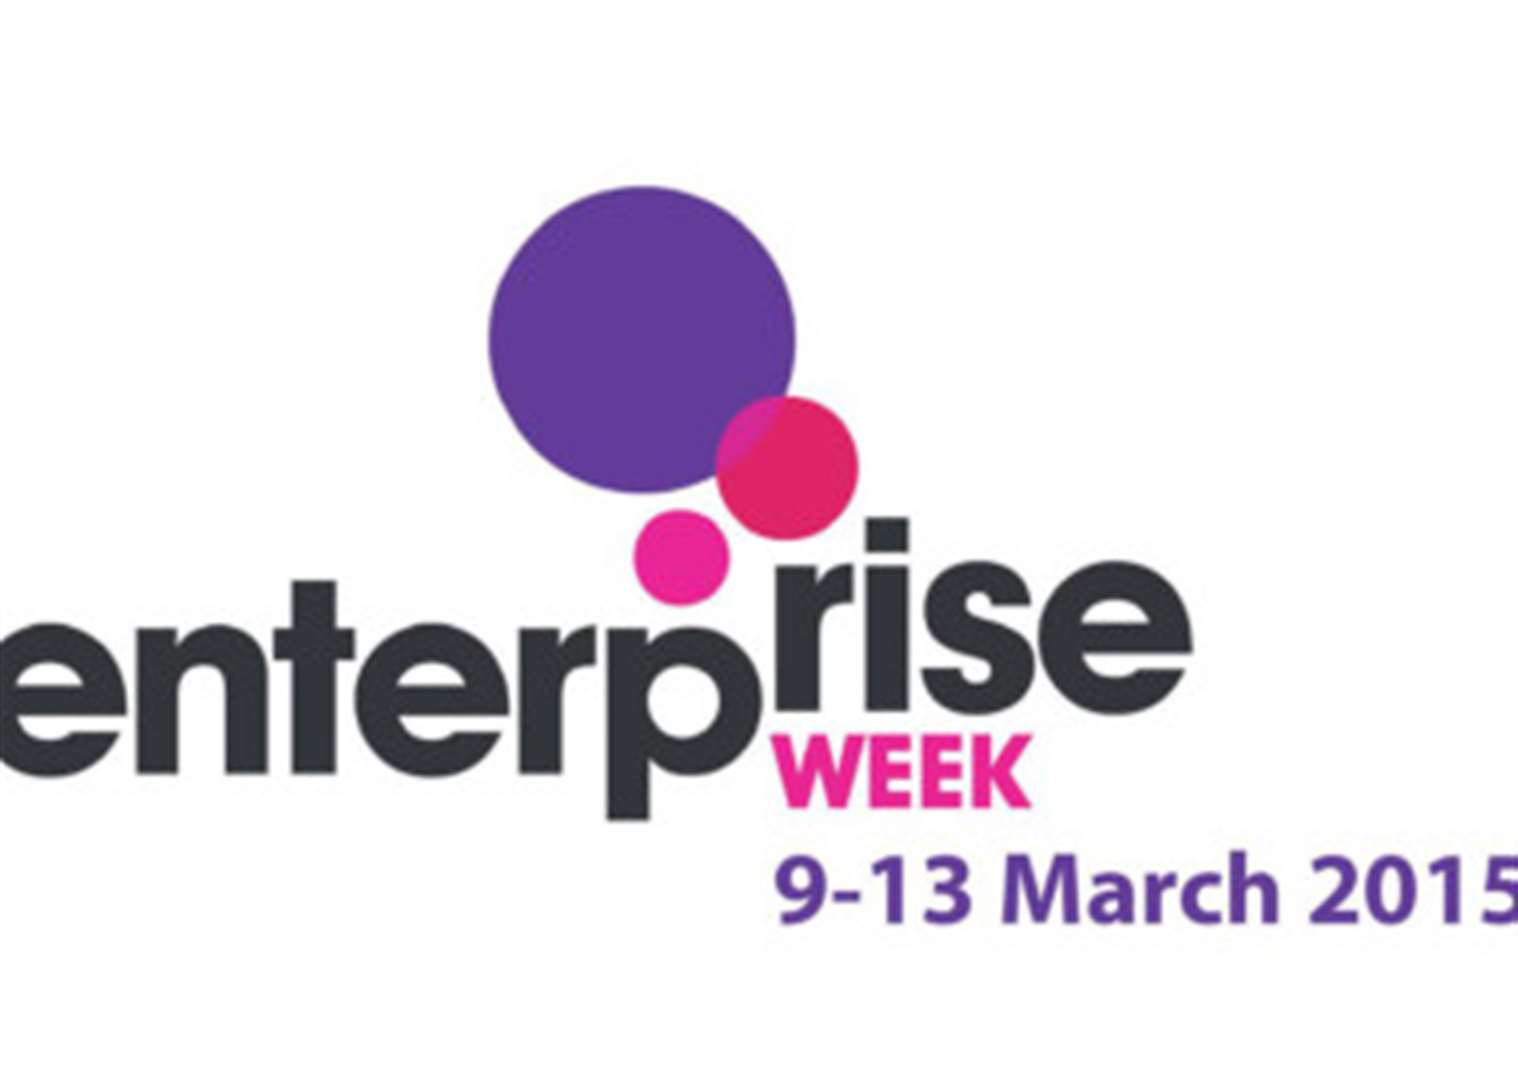 Enterprise Week will return in the spring, says SKDC